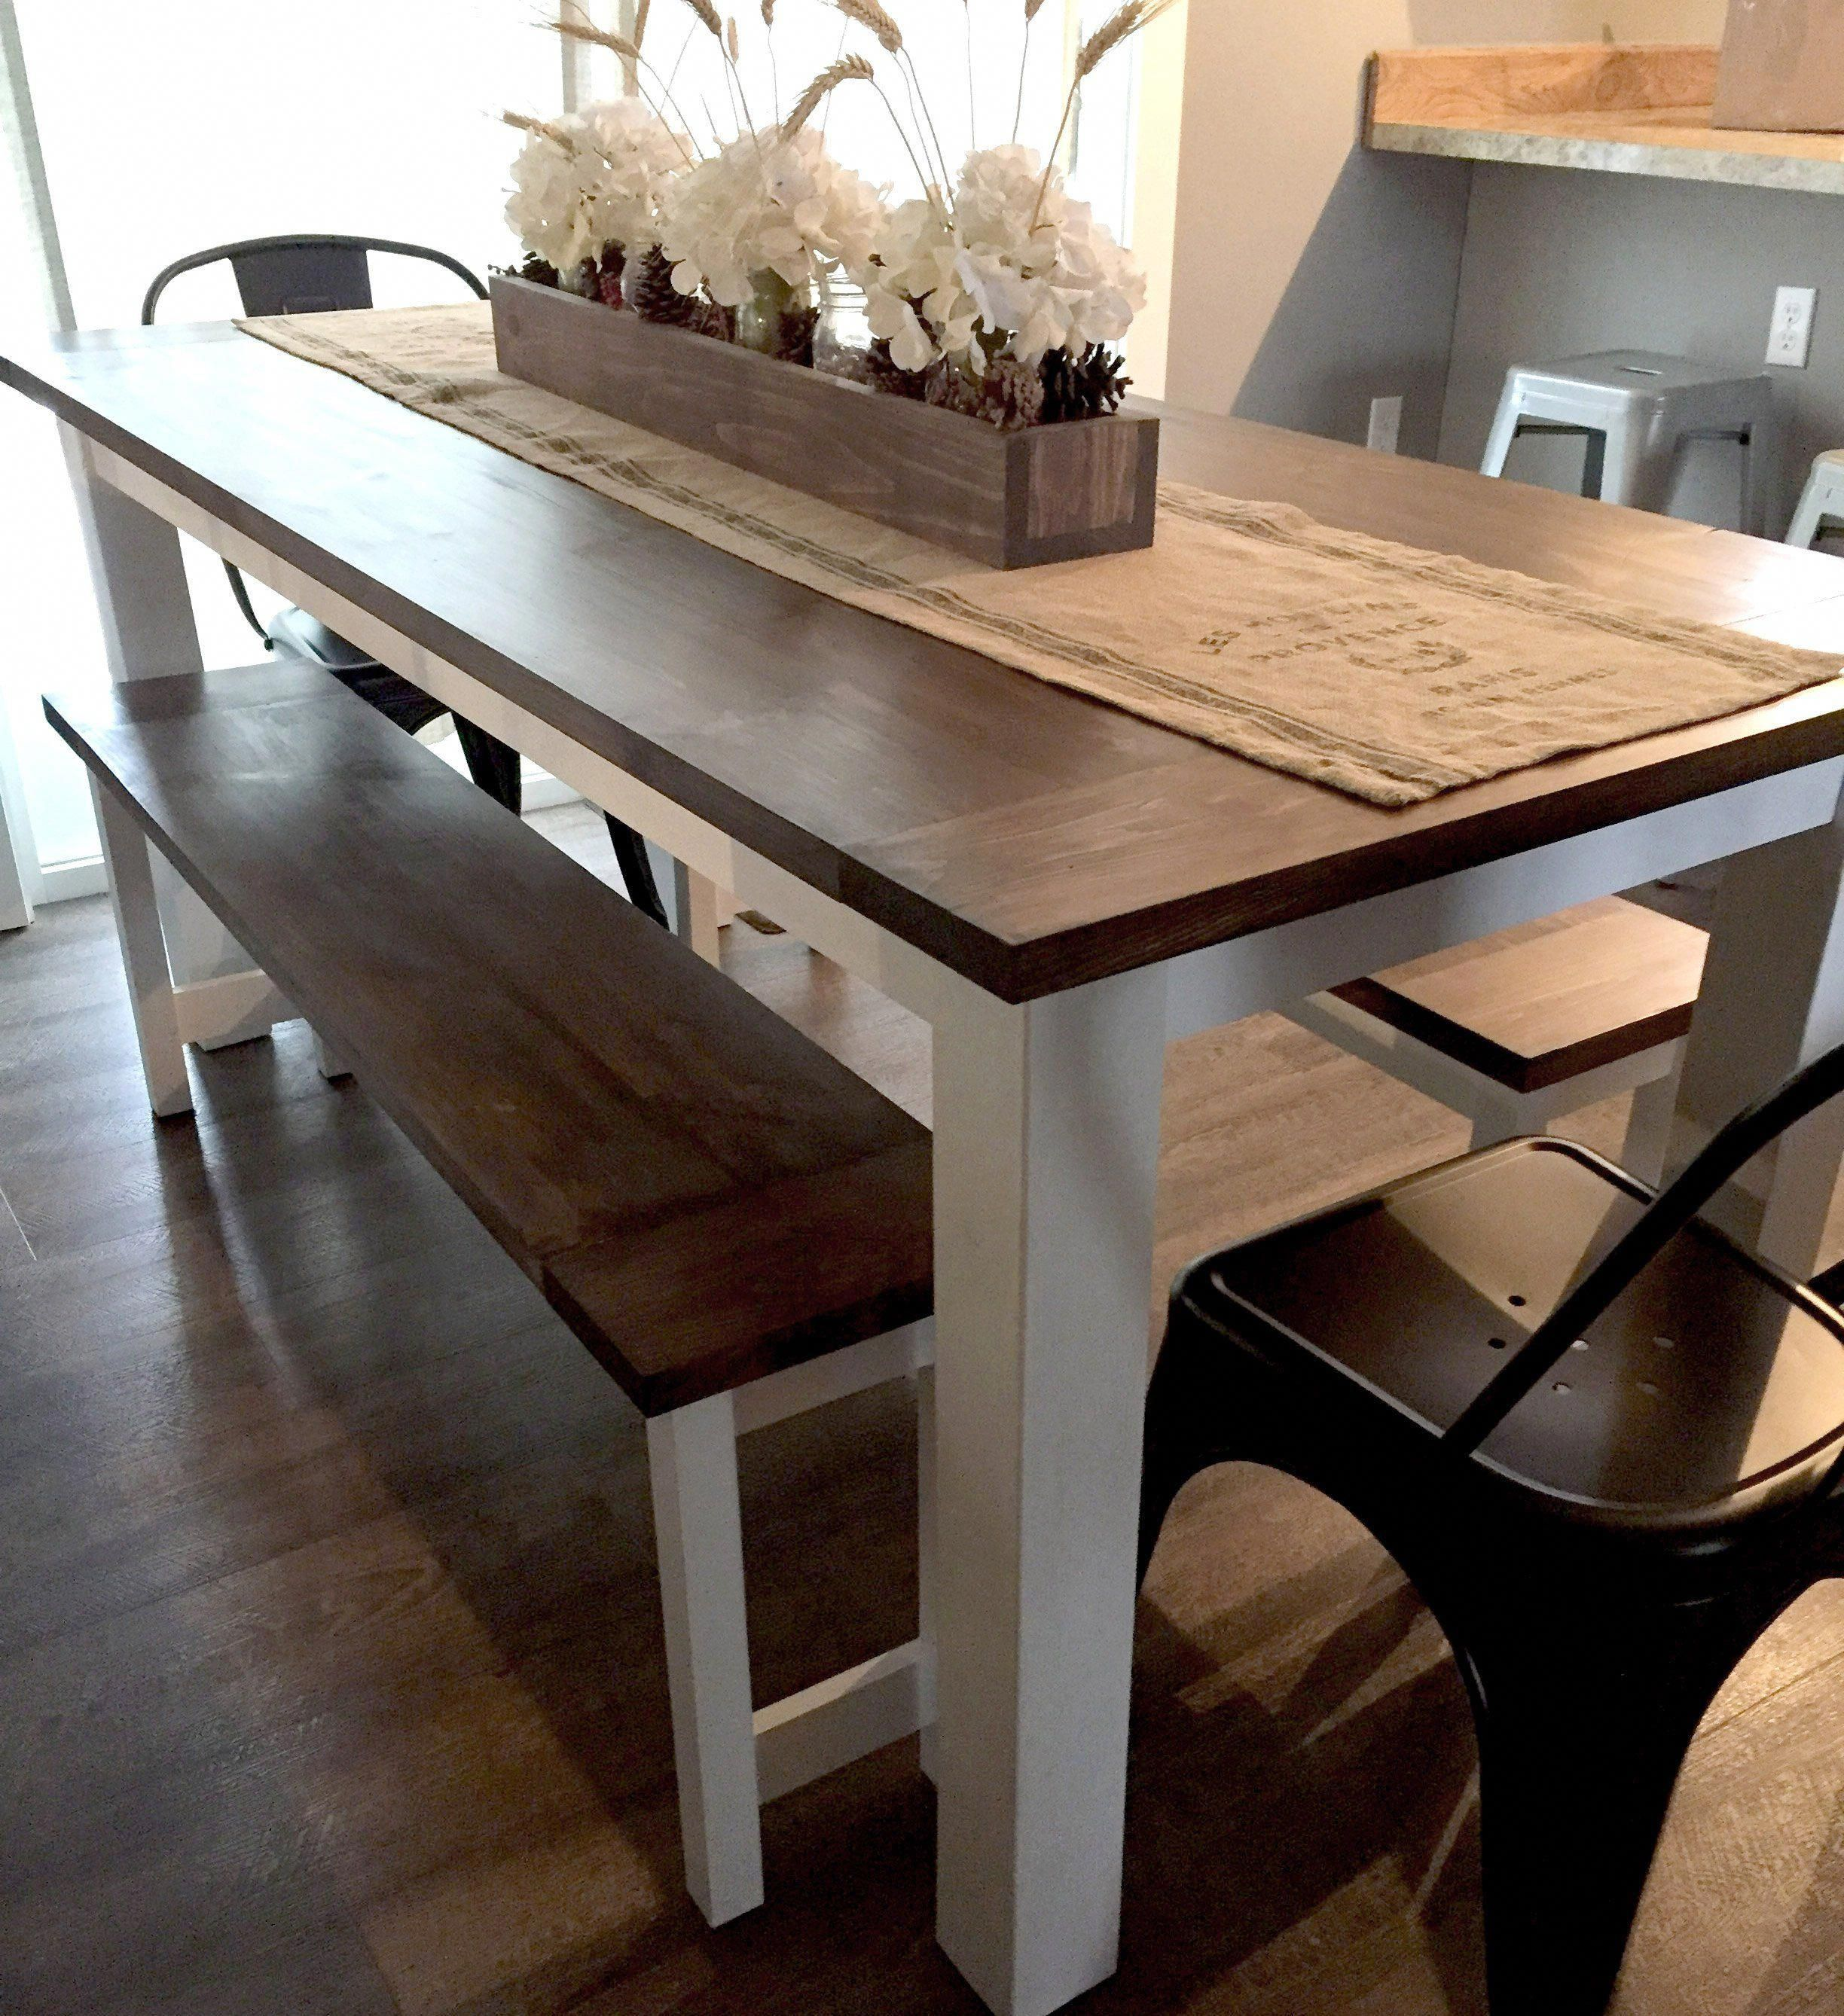 diy farmhouse table plans with benches woodworking plans etsy diyfurniturebench in 2020 diy on farmhouse kitchen table diy id=14533